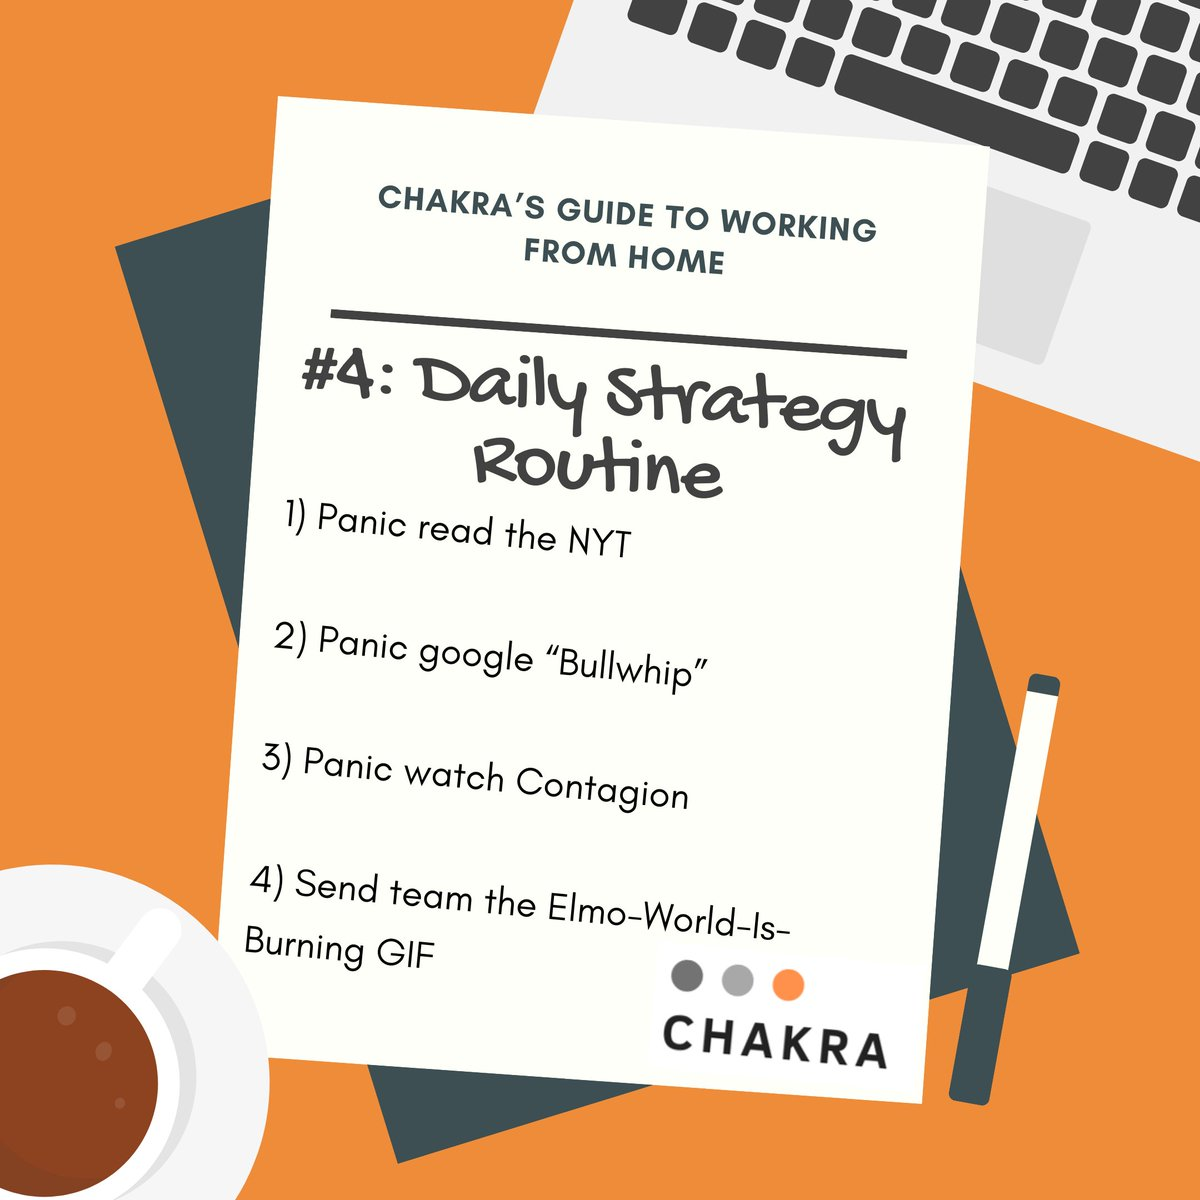 Struggling with the new reality of working from home with the whole family? Chakra is here to help.  Follow us here and see the full guide: https://www.linkedin.com/company/19161180 …  #supplychain #digitaltransformation #wfh #leadershipandmanagement #circularpic.twitter.com/BFWhCh6y7v